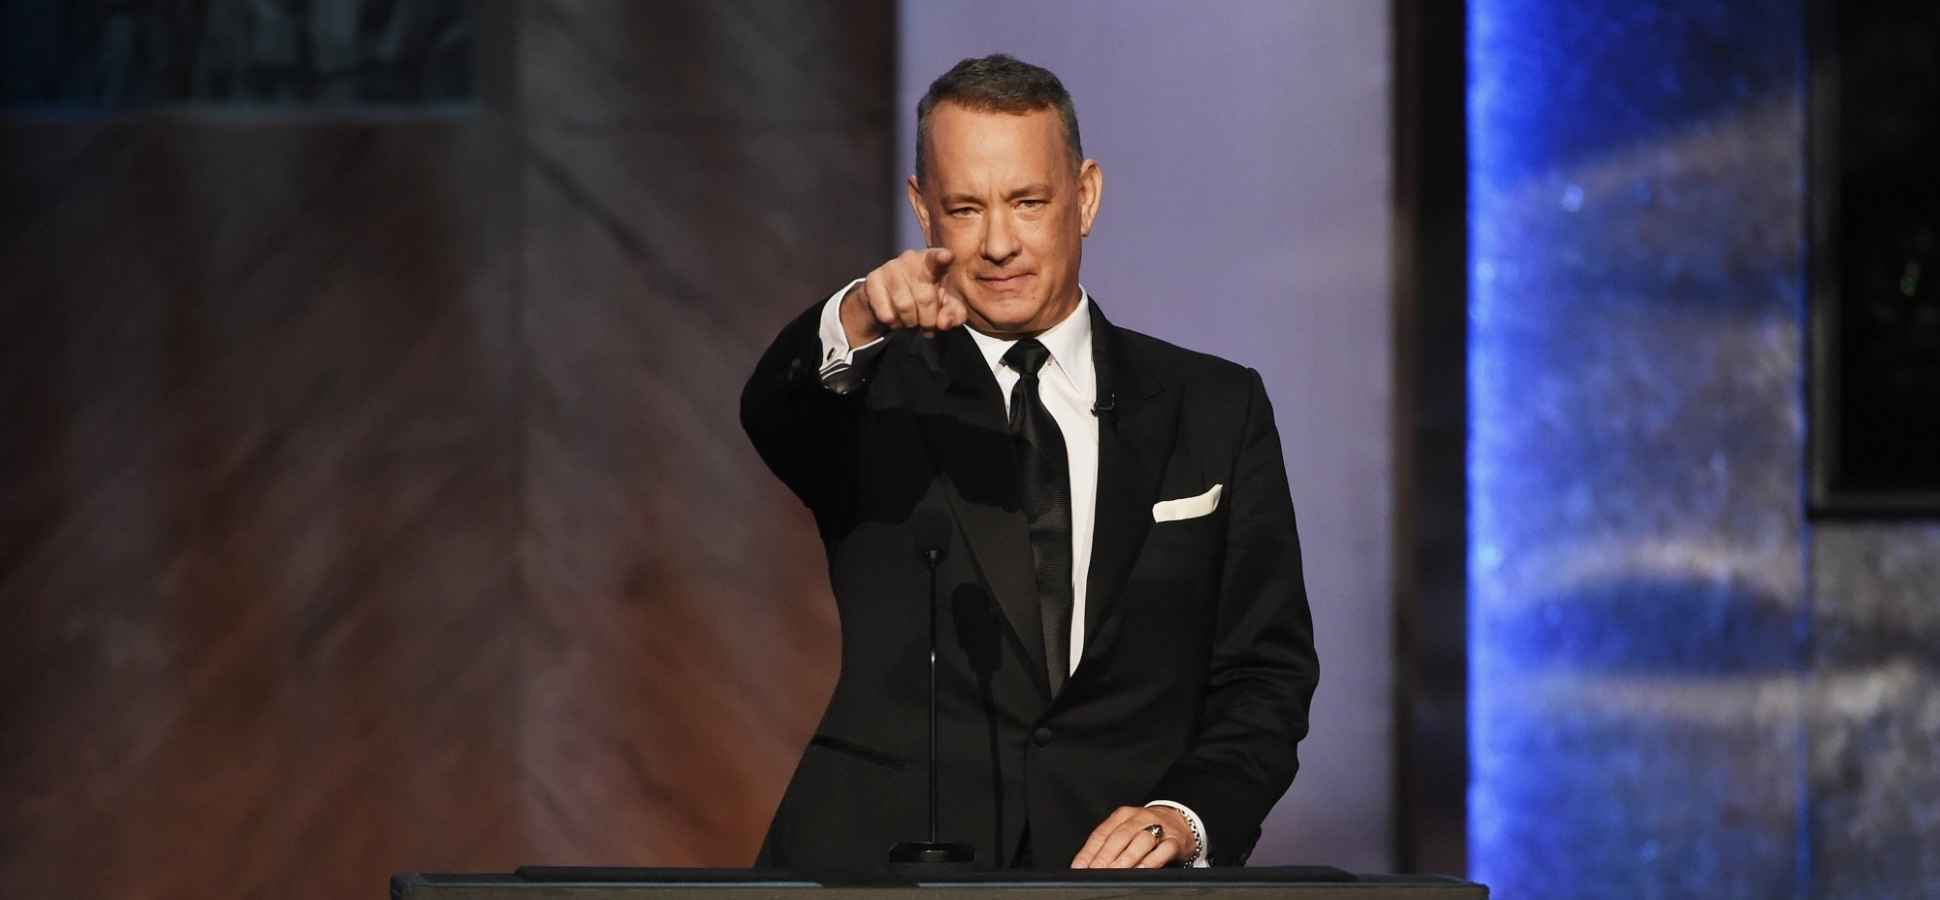 18 Quotations from Tom Hanks on Life, Leadership, and Heroism